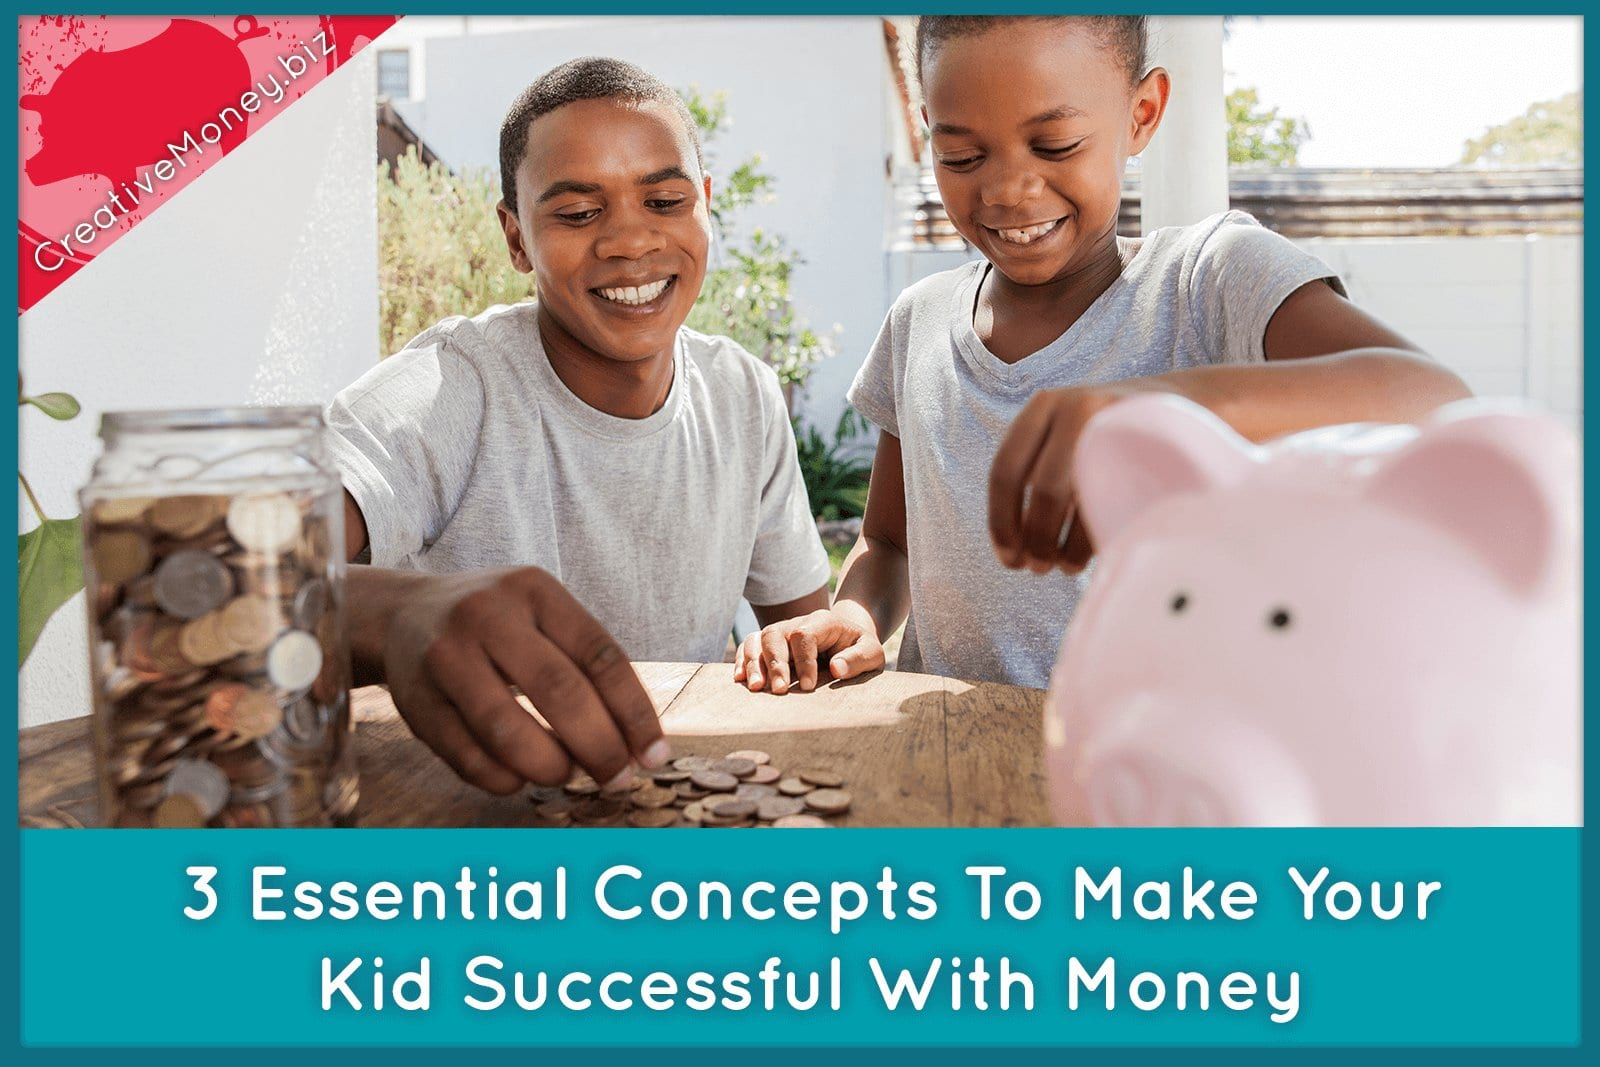 3 essential concepts to make your kid successful with money